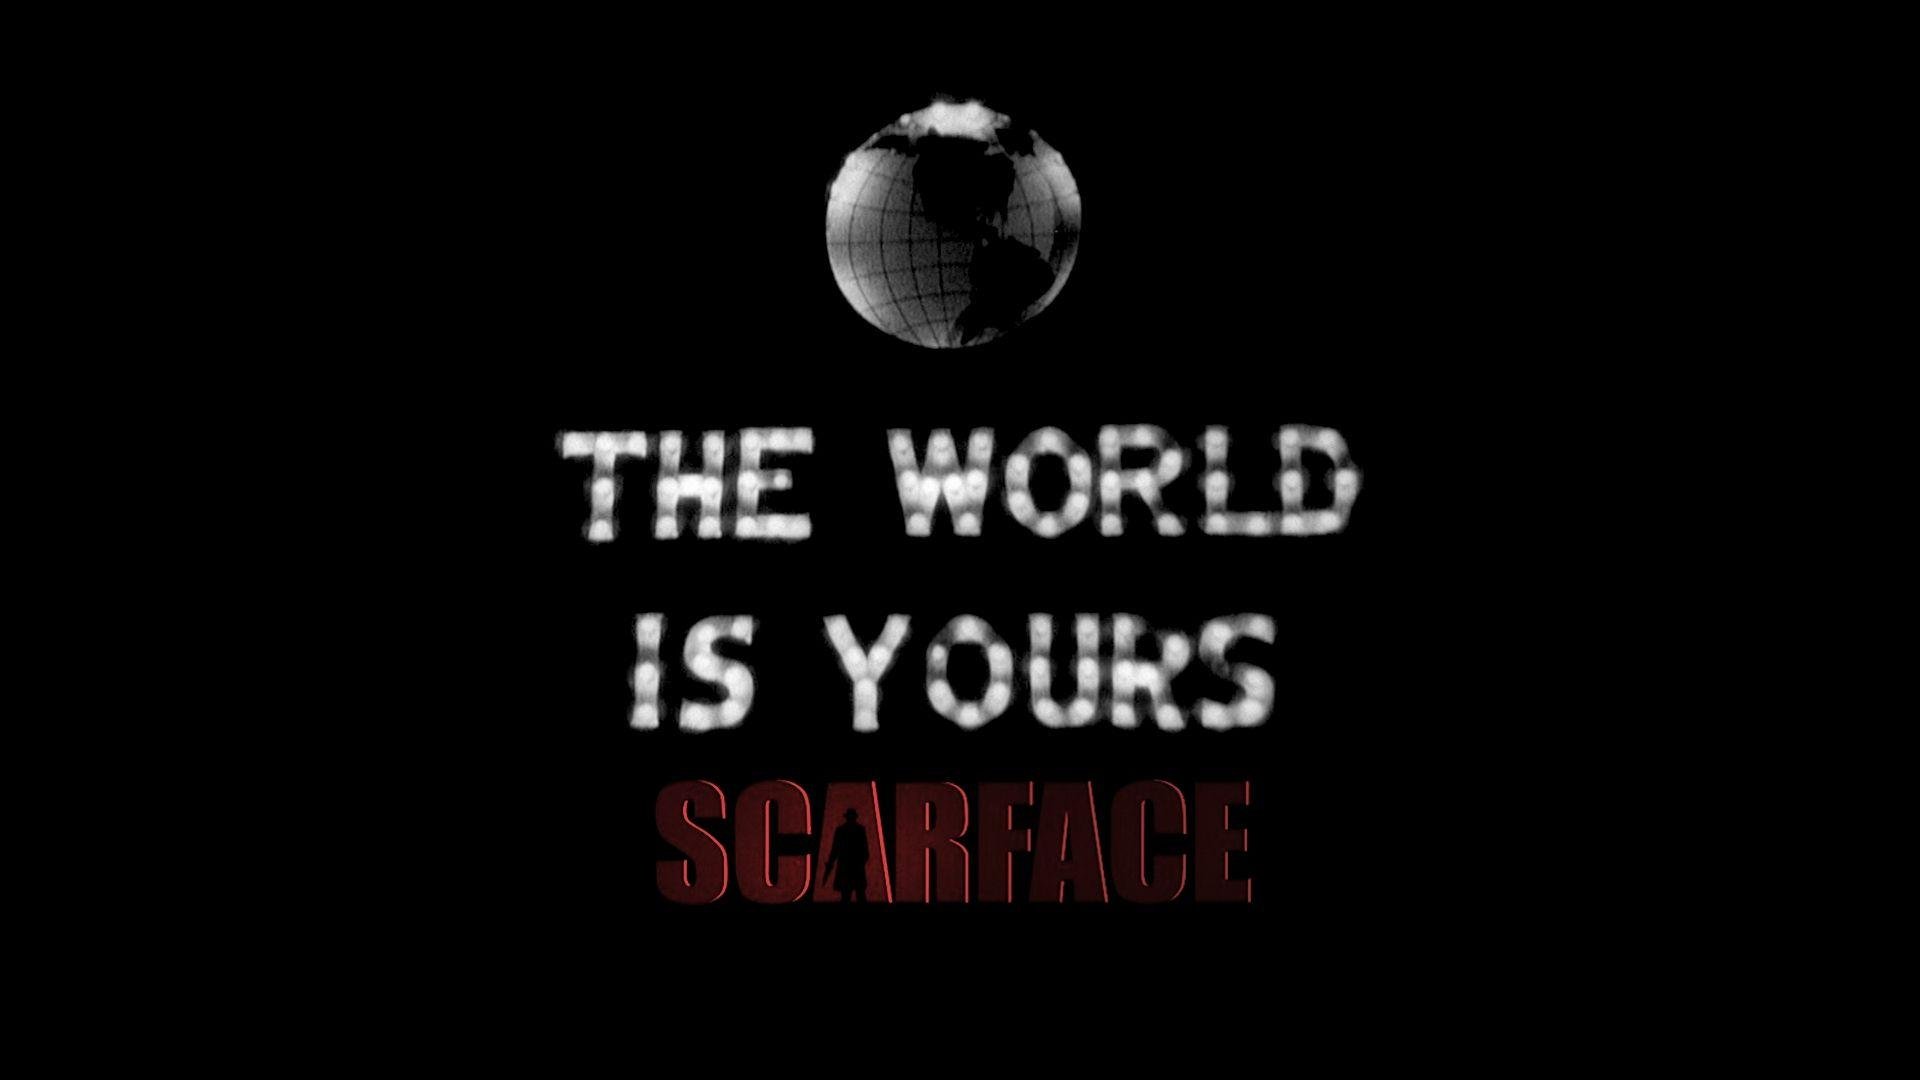 scarface wallpapers hd wallpaper cave